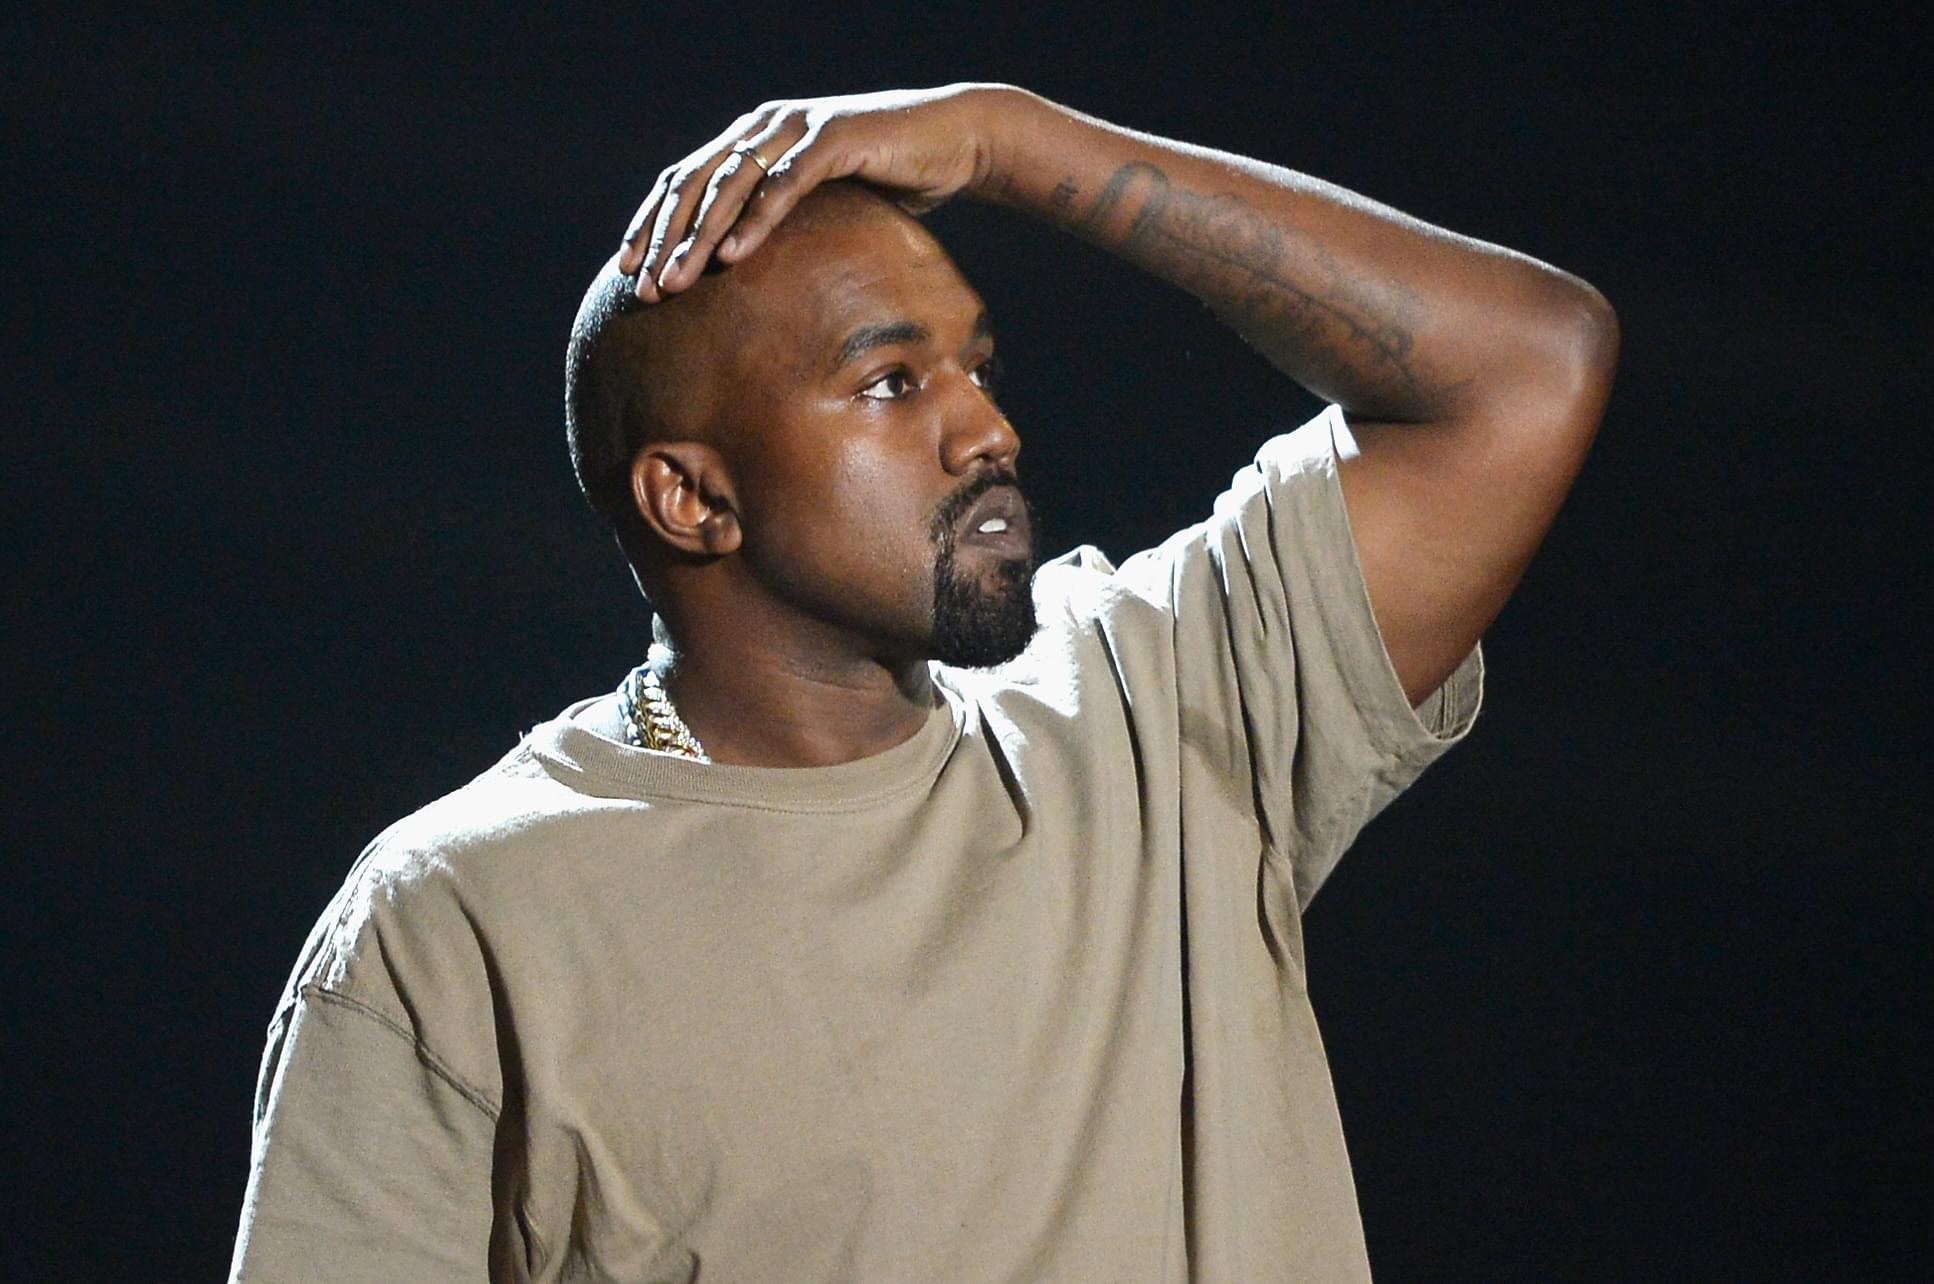 Kanye West Drops Out of Presidential Race